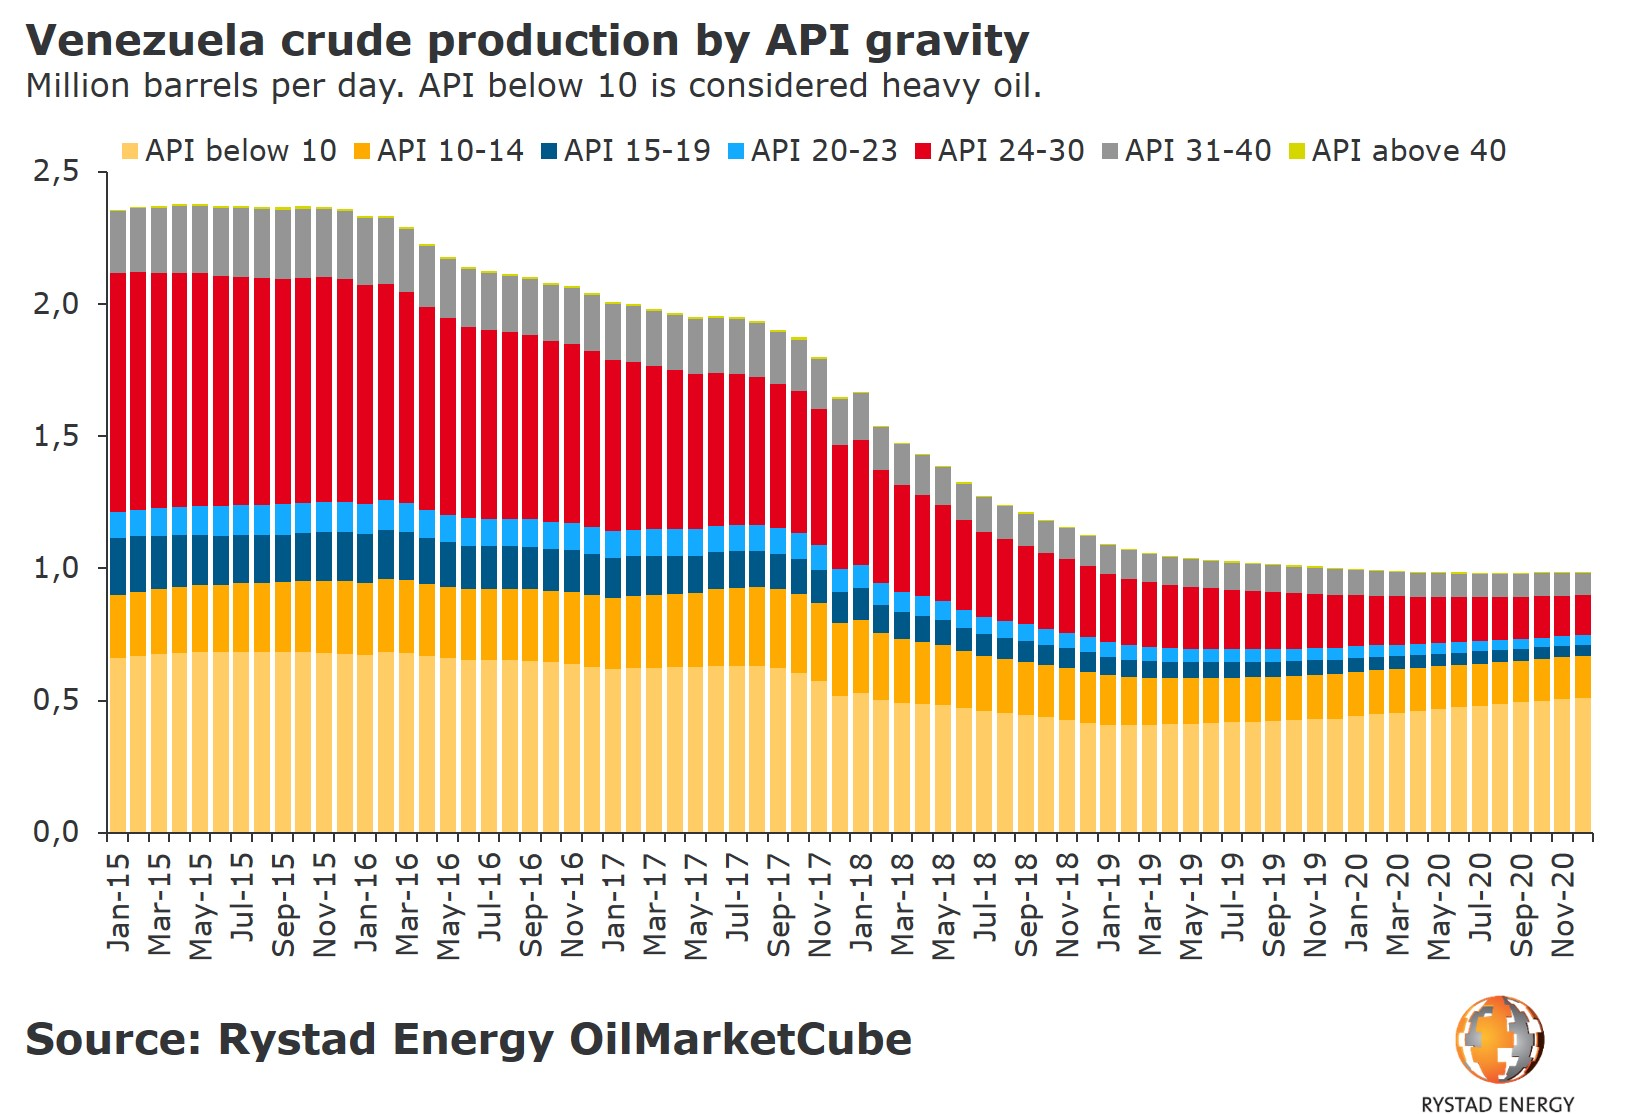 A bar chart showing Venezuela crude production by API gravity in Million barrels per day. API below 10 is considered heavy oil.